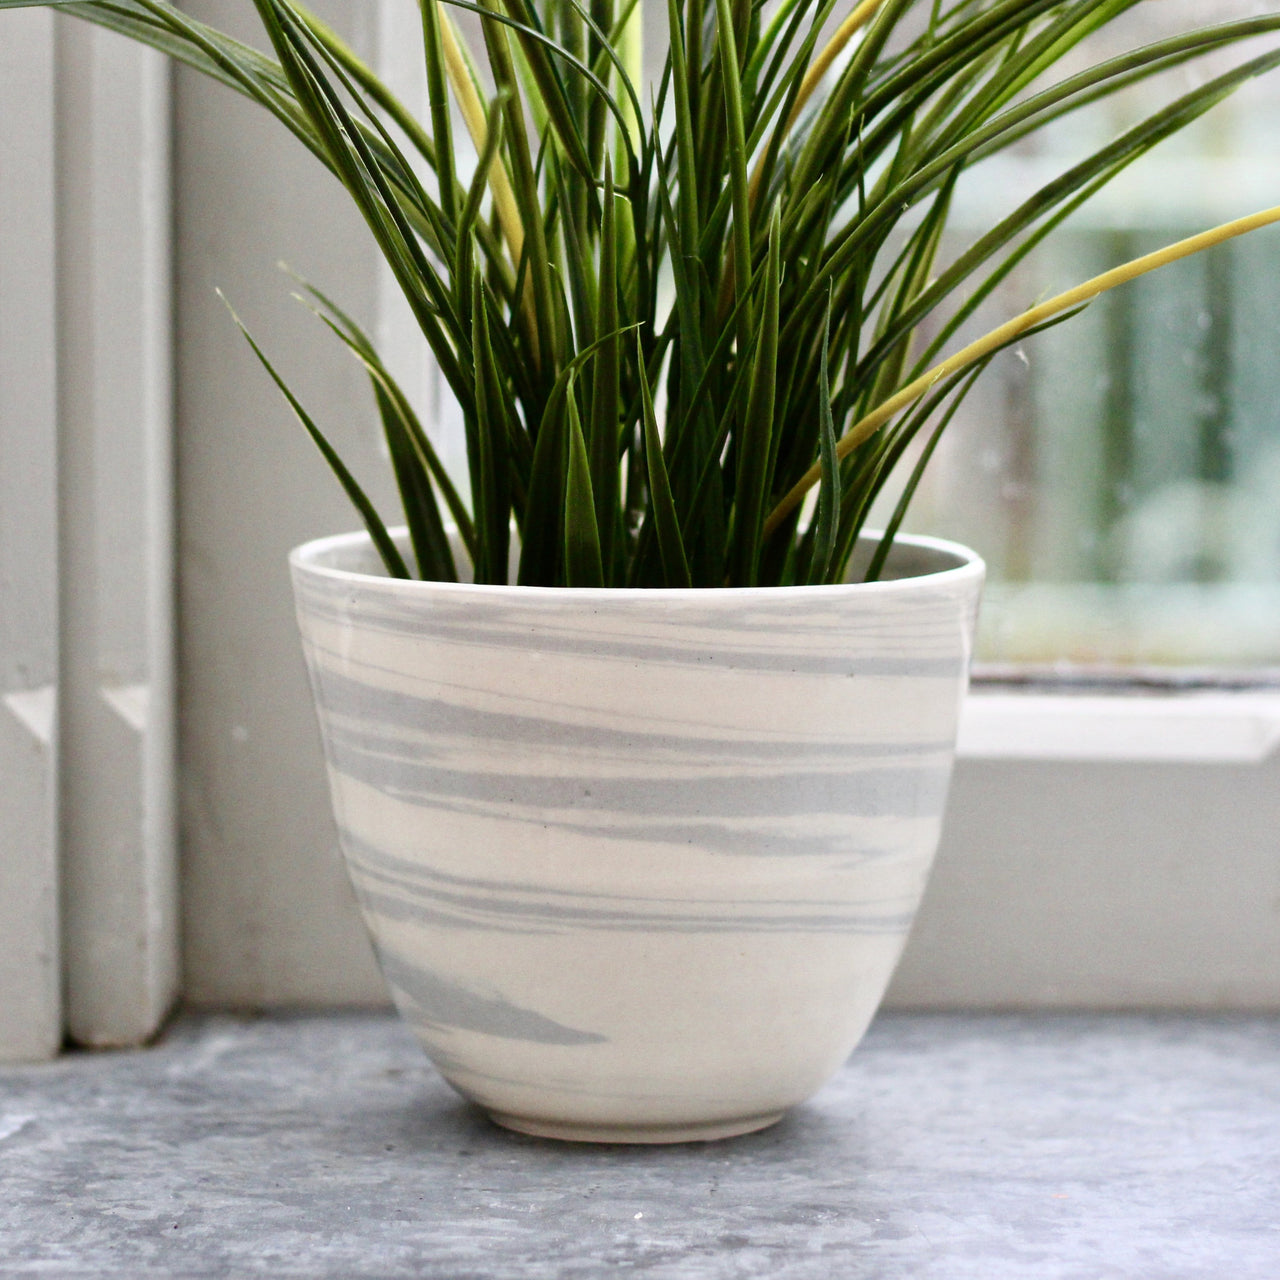 Marbled Planter Bowl - Large